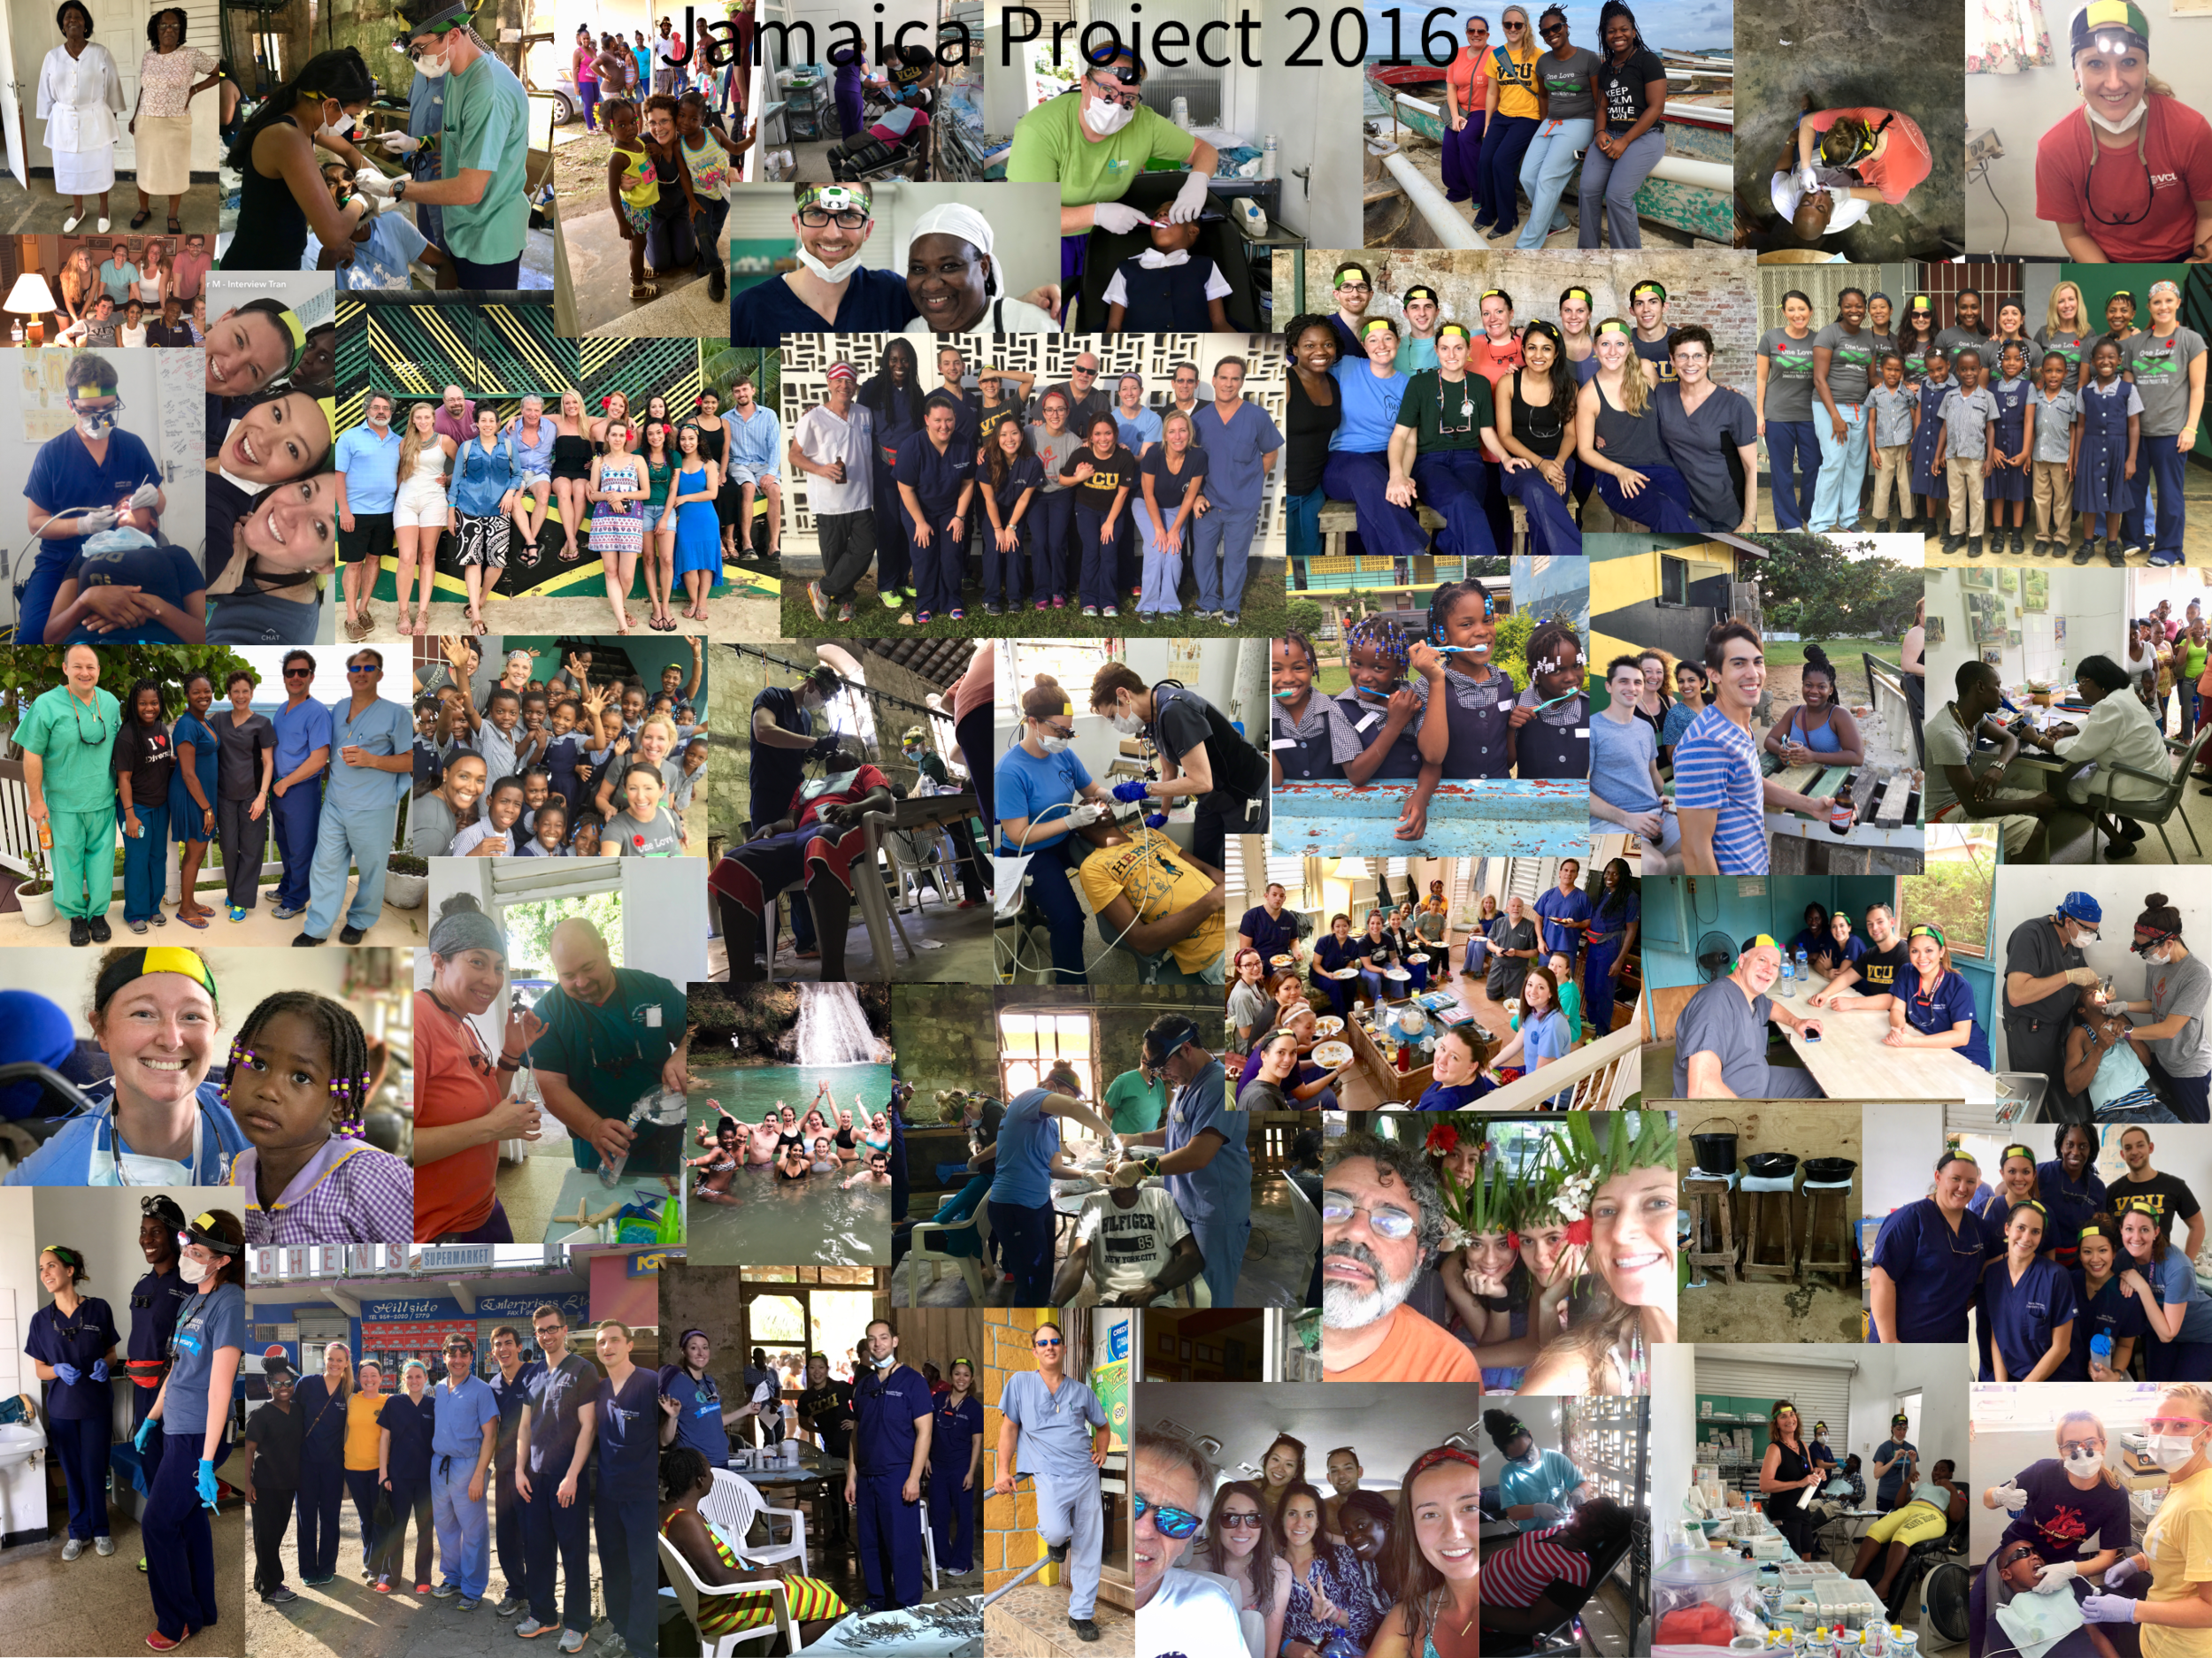 Jamaica Project 2016 Collage